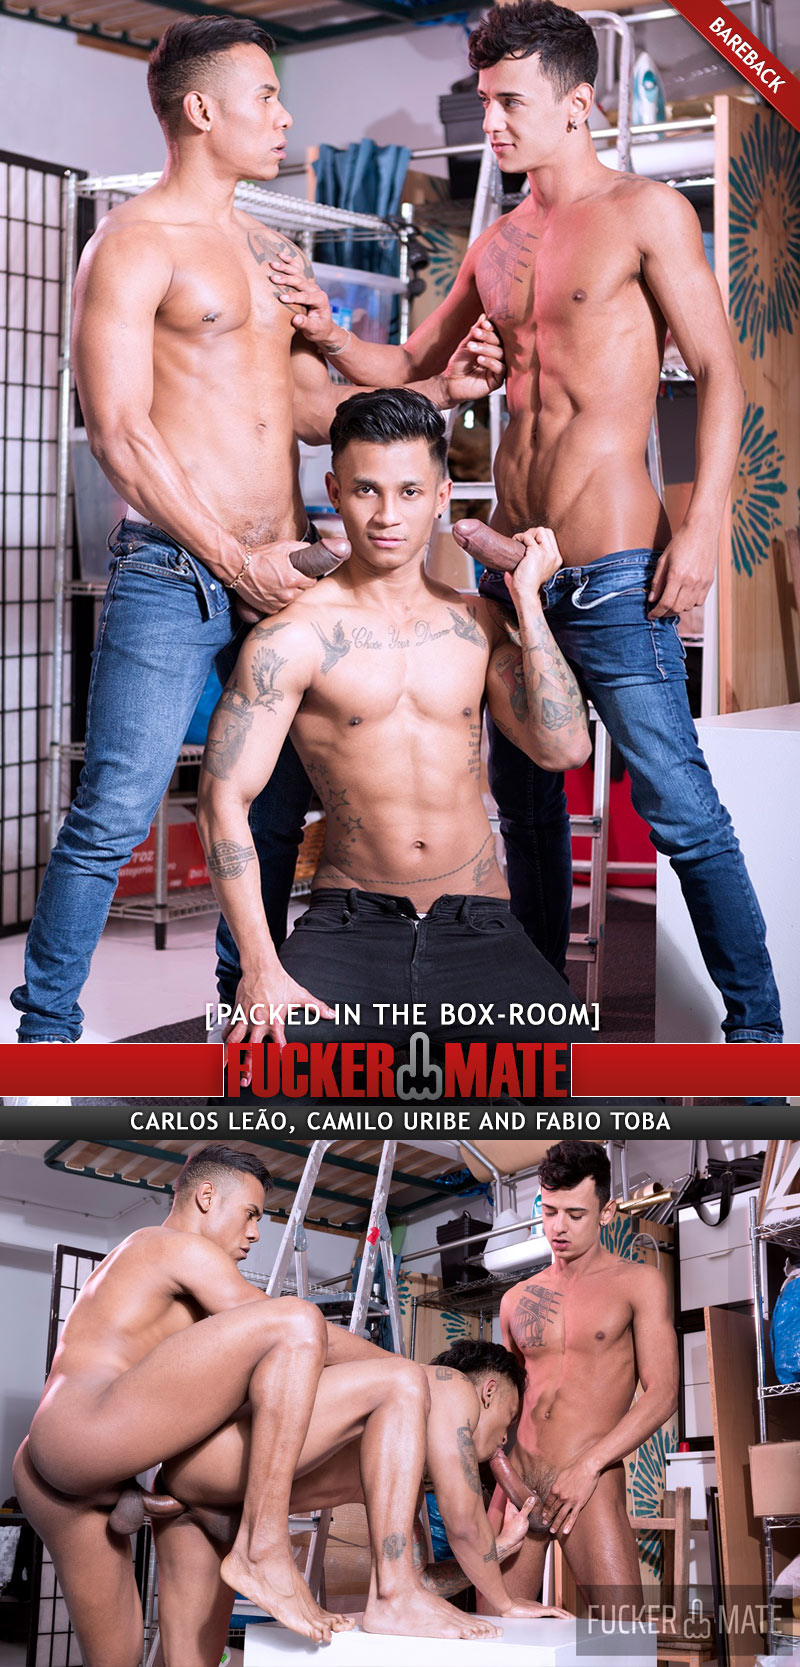 Packed In The Box-Room (Carlos Leão, Camilo Uribe And Fabio Toba) (Bareback) at Fuckermate